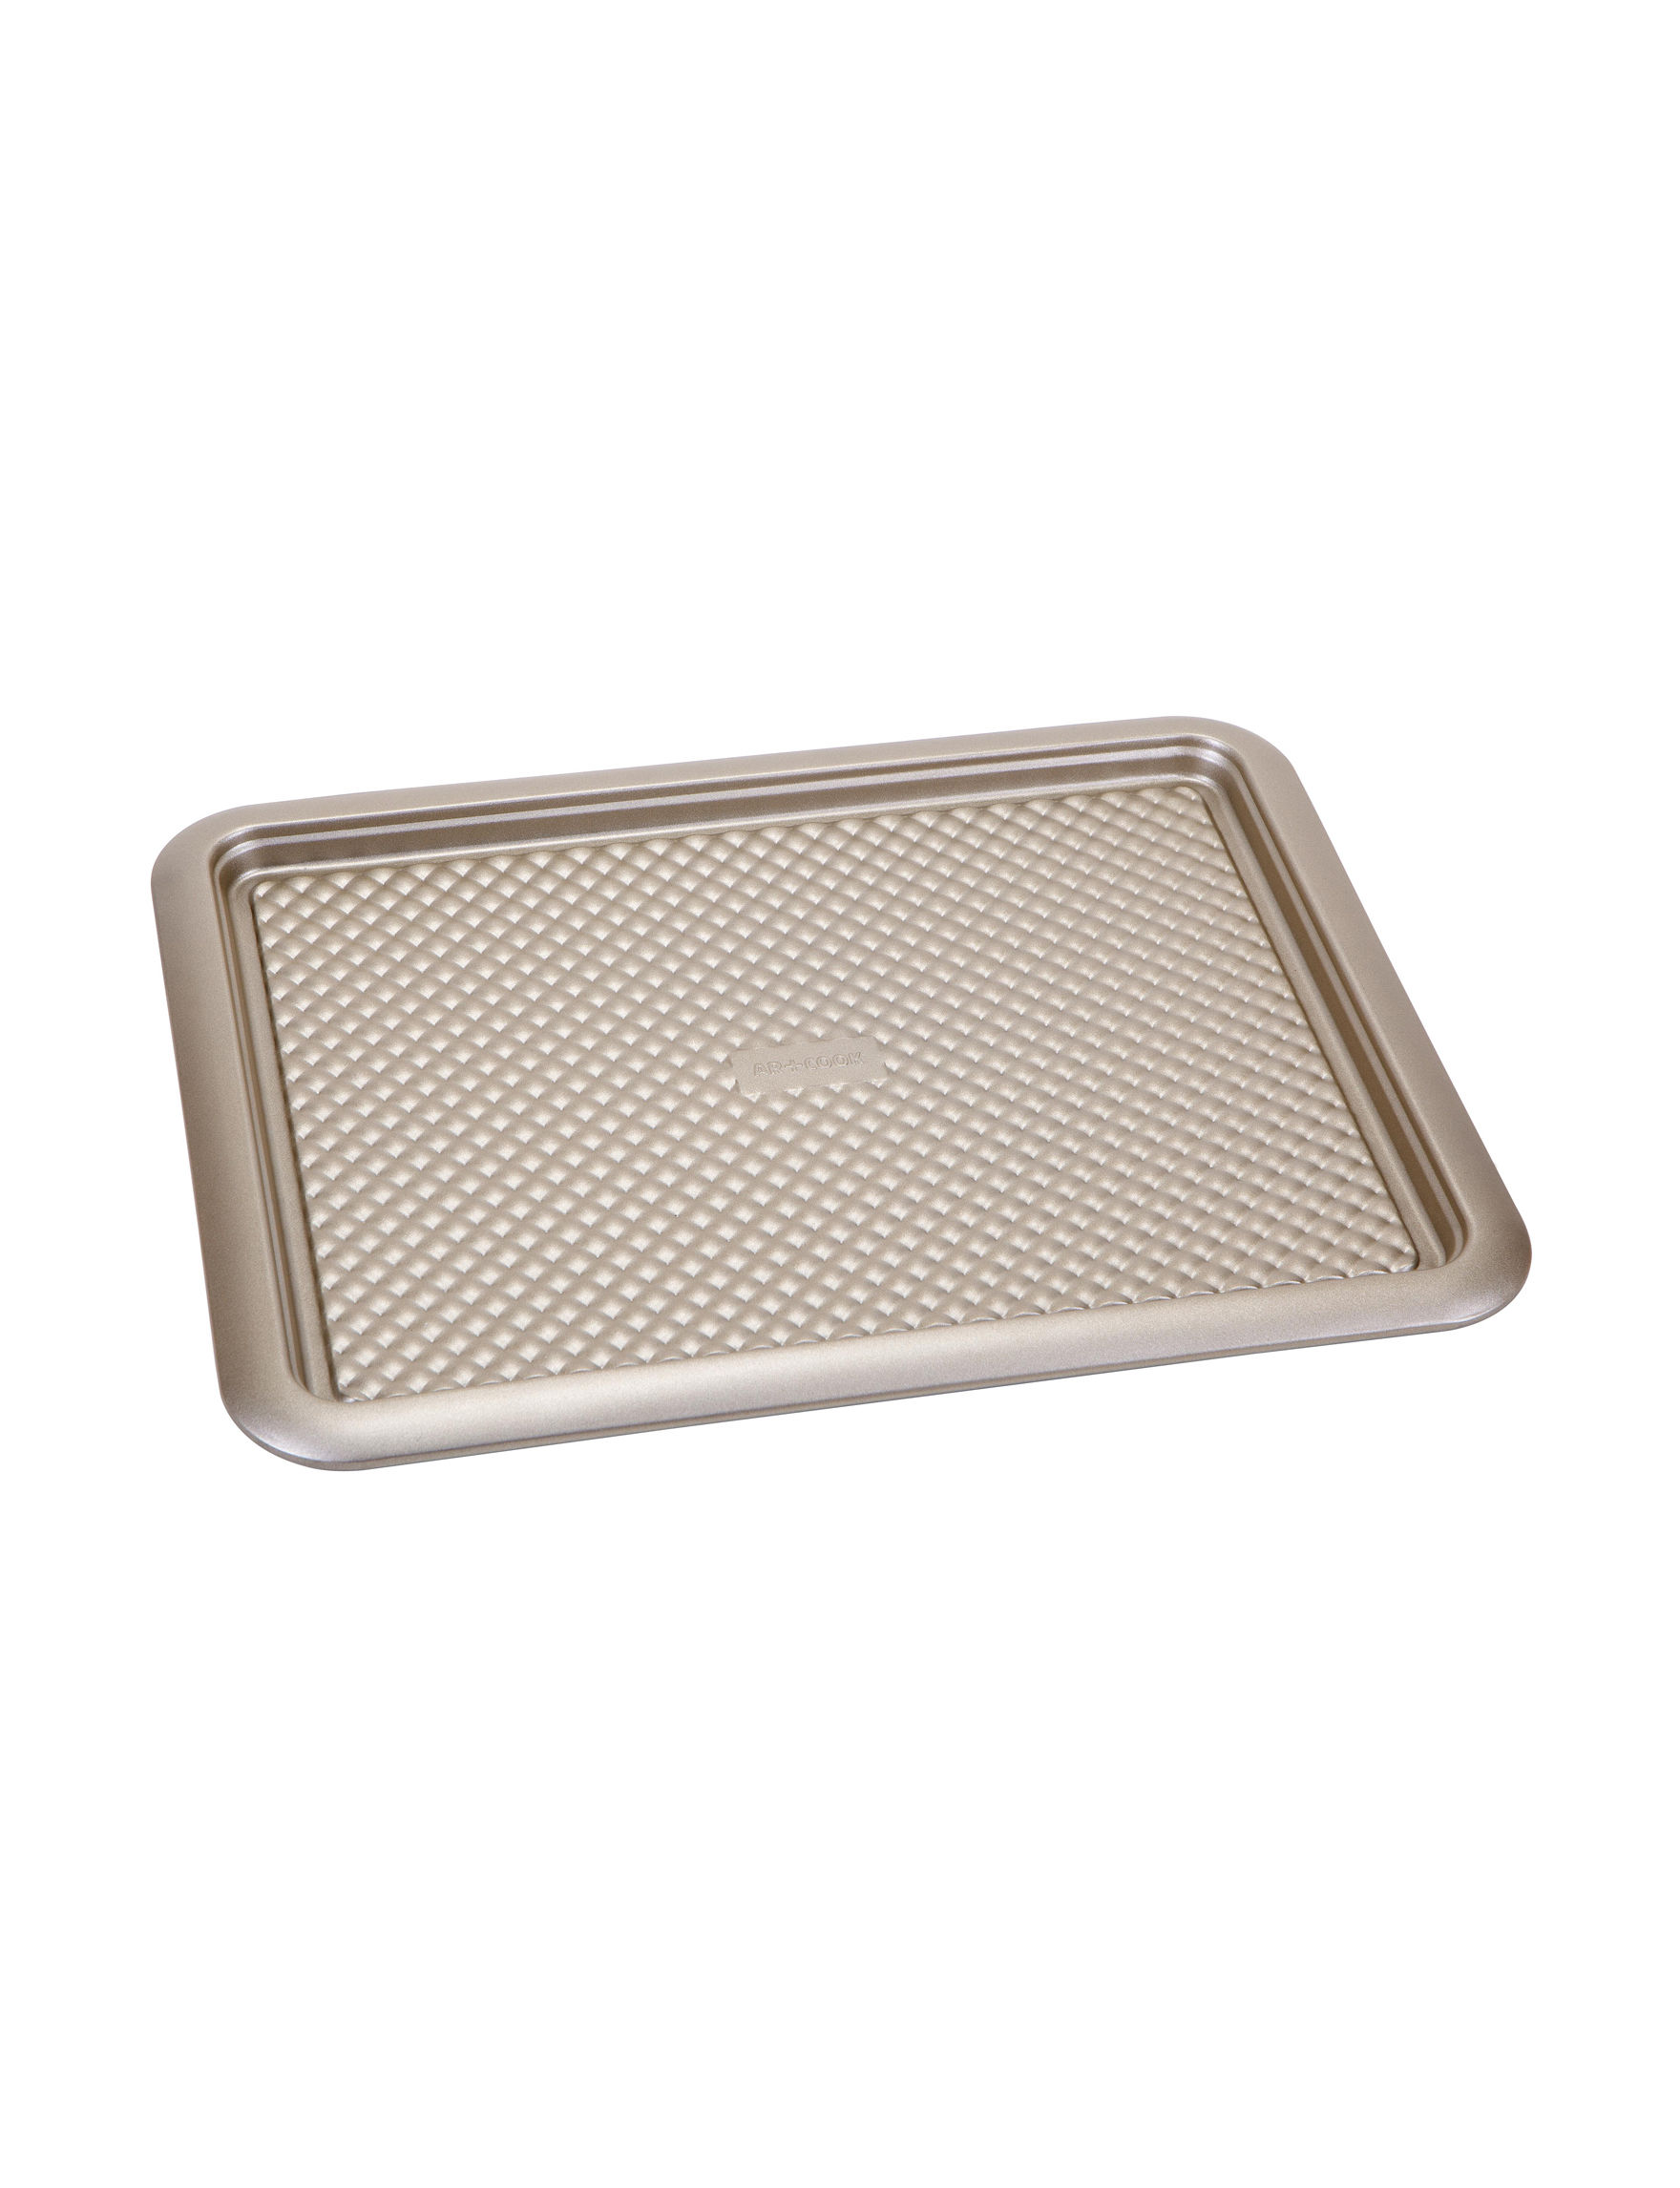 Art and Cook Gold Cookie Sheets Bakeware